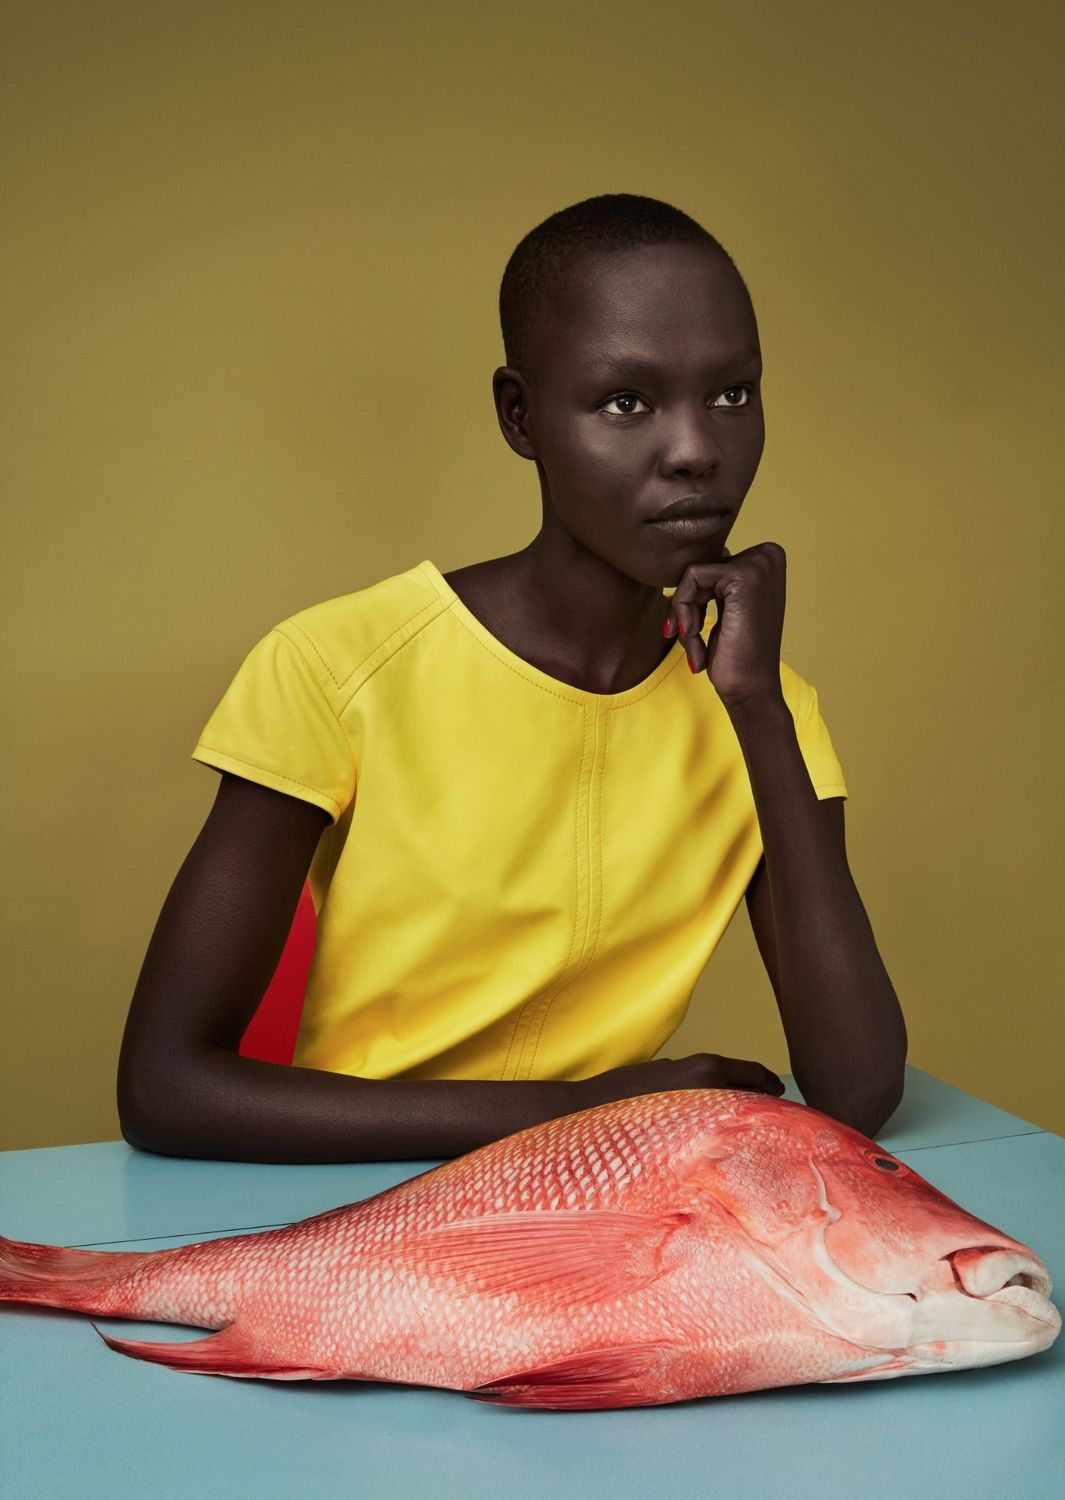 Sunrise Market  Publication: Luncheon Magazine #3 Spring 2017  Model: Grace Bol  Photographer: Solve Sundsbo  Fashion Editor: Mattias Karlsson  Hair: Chisato Yamamoto  Make Up: Polly Osmond